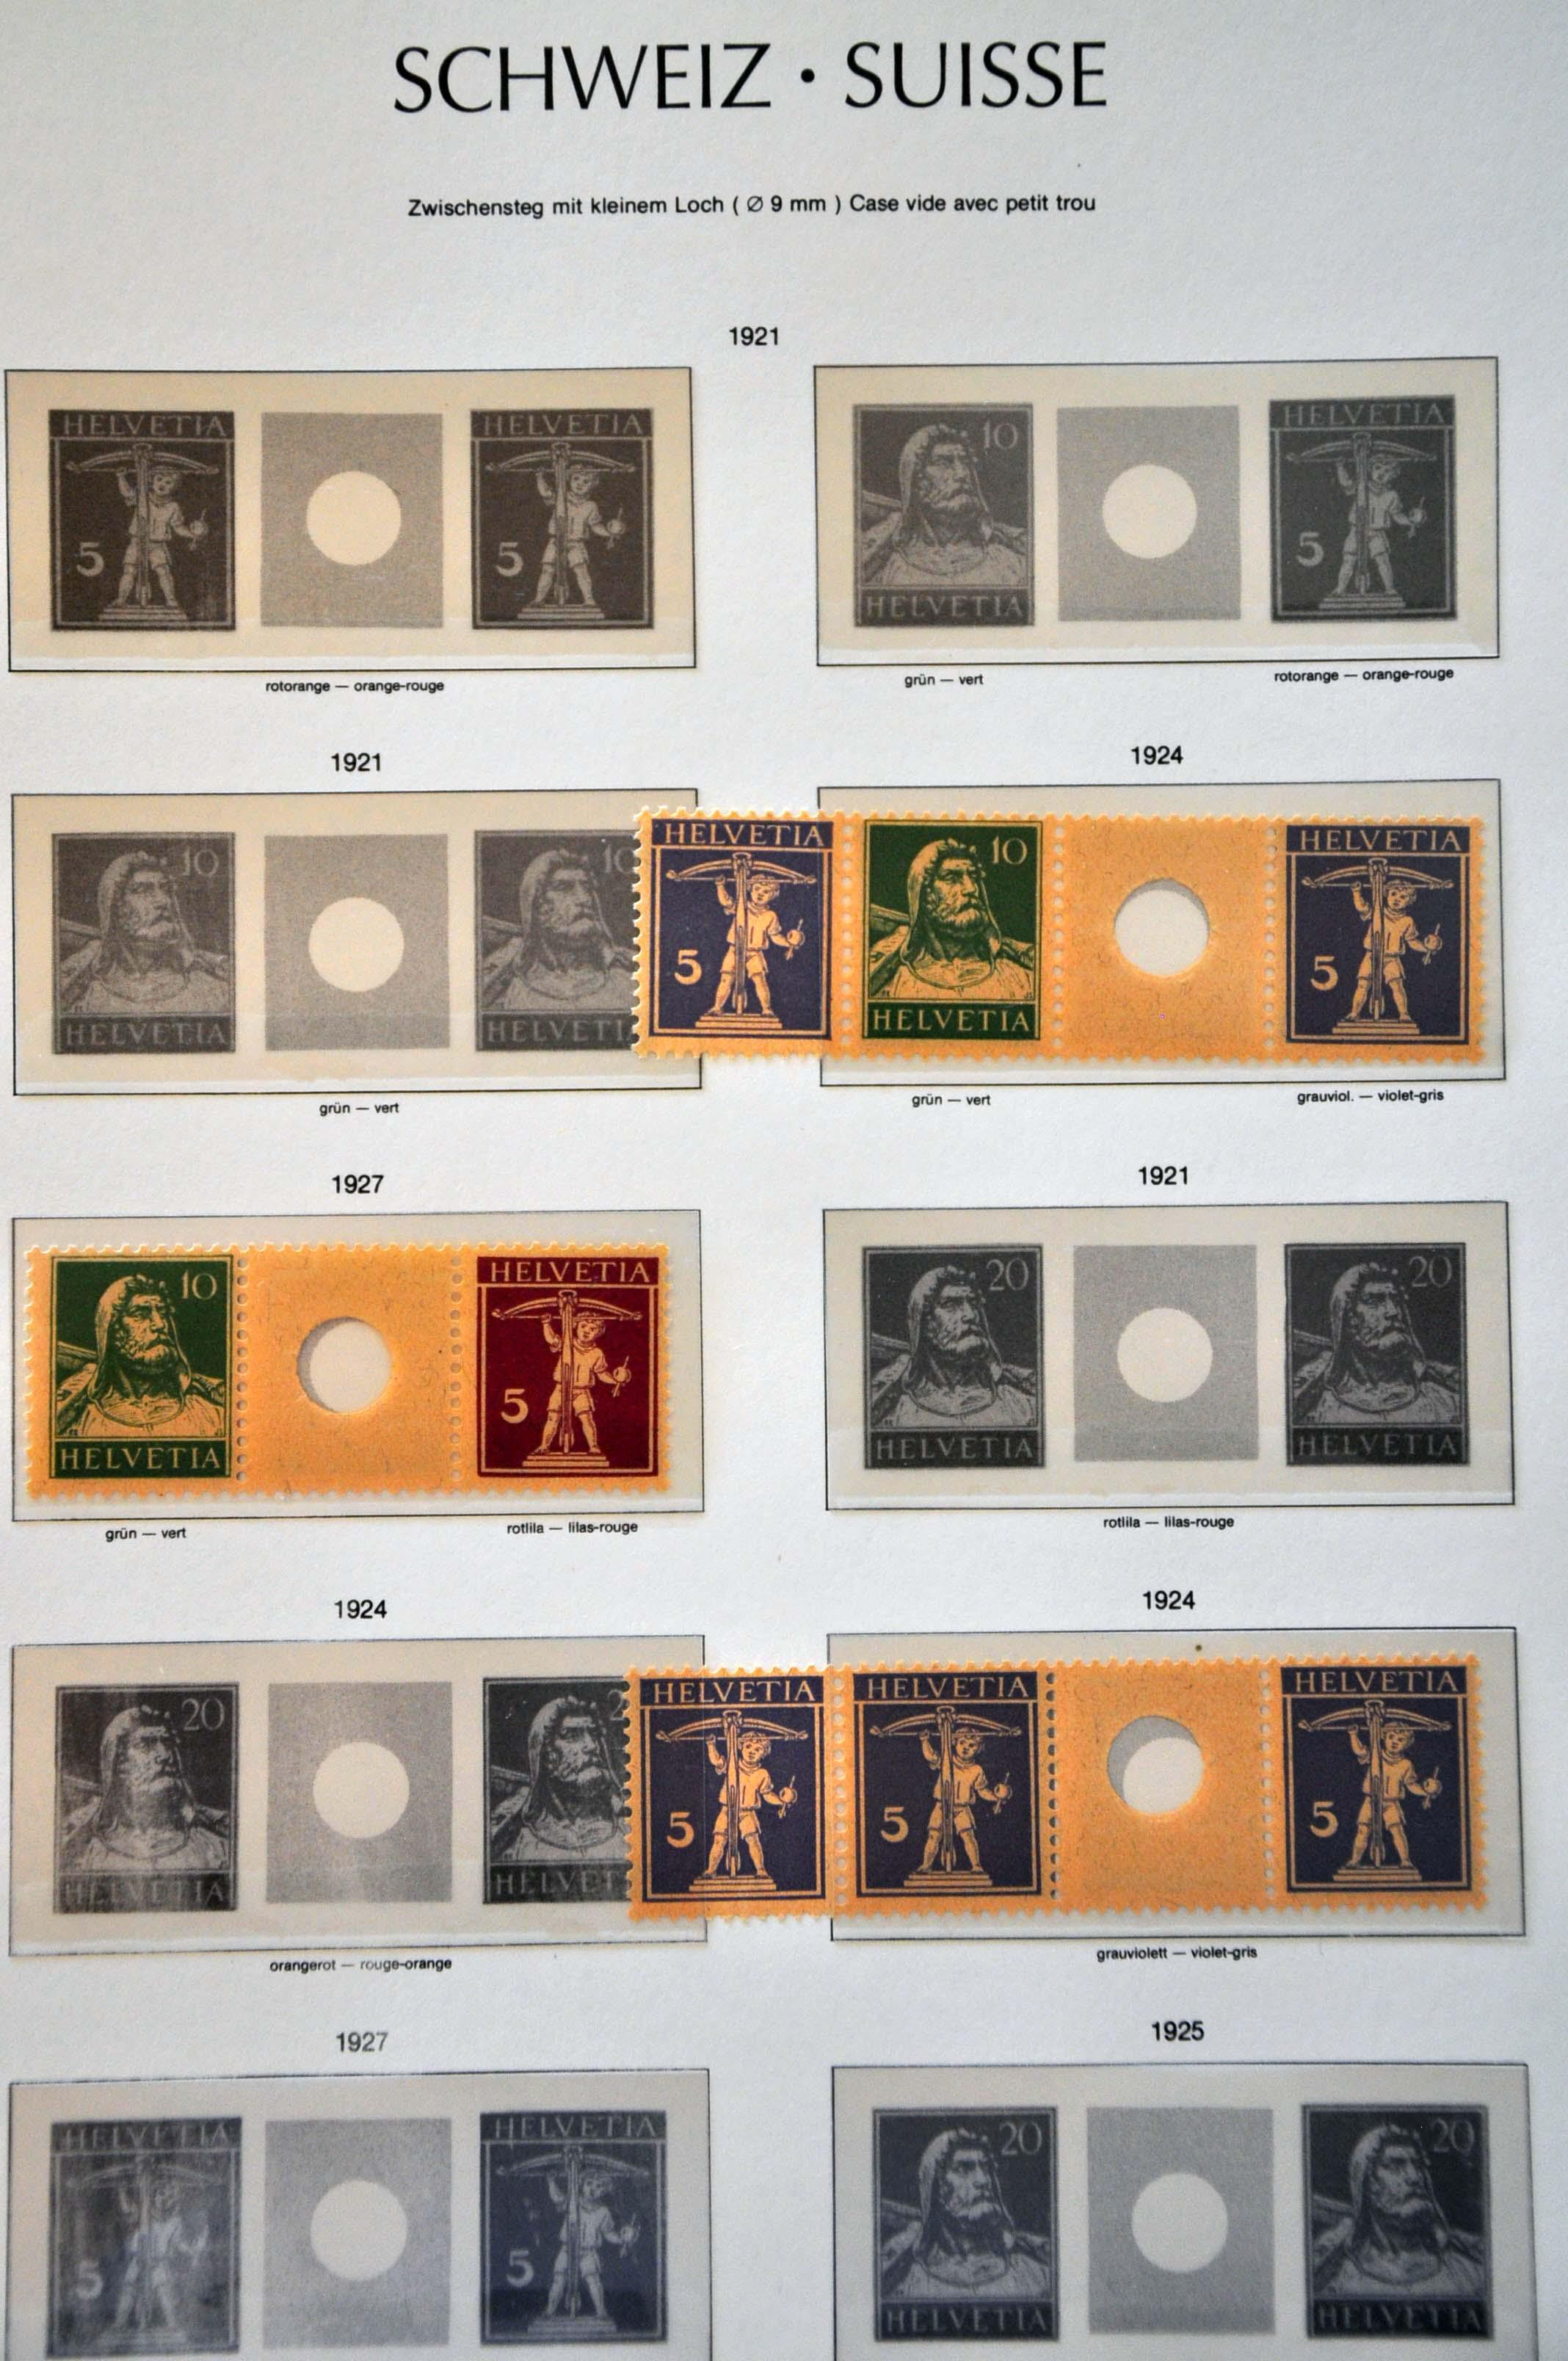 Lot 684 - Switzerland Switzerland -  Corinphila Veilingen Auction 245-246 Day 2 - Foreign countries - Collections and lots, Foreign countries - Boxes and literature